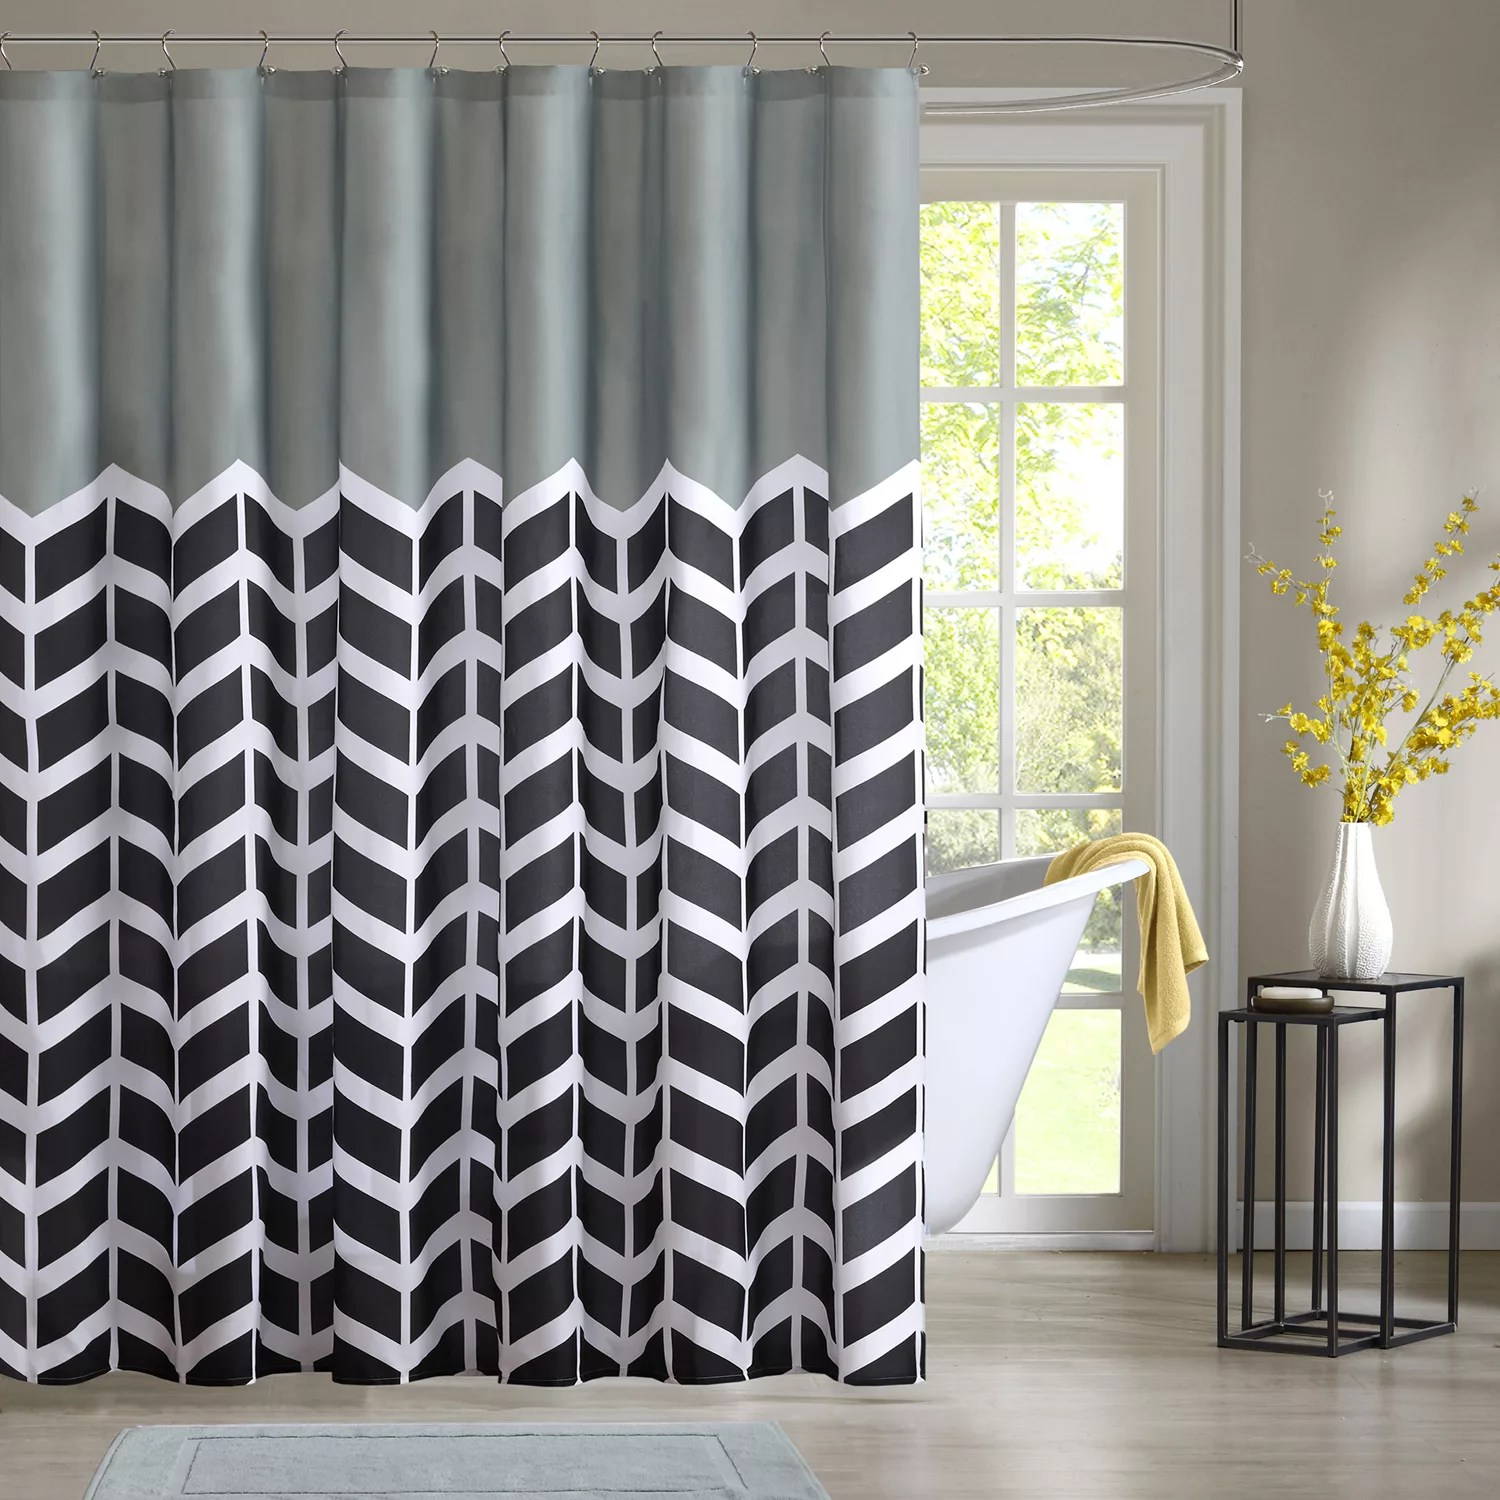 Kohls Com Shower Curtains Intelligent Design Chevron Shower Curtain Collection